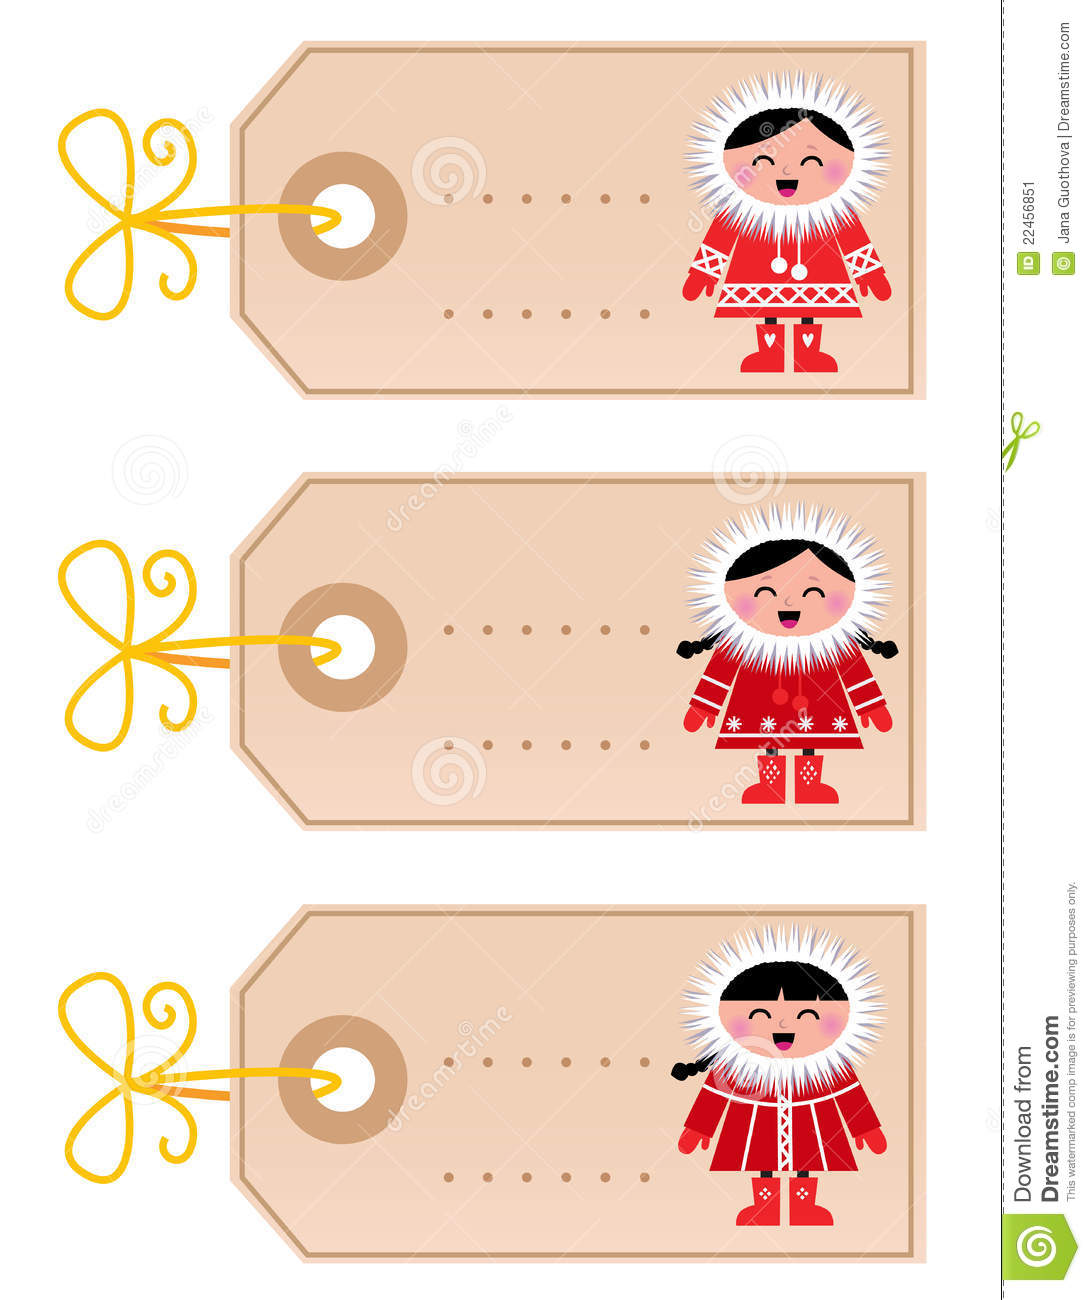 More similar stock images of ` Christmas blank tags with eskimo kids `